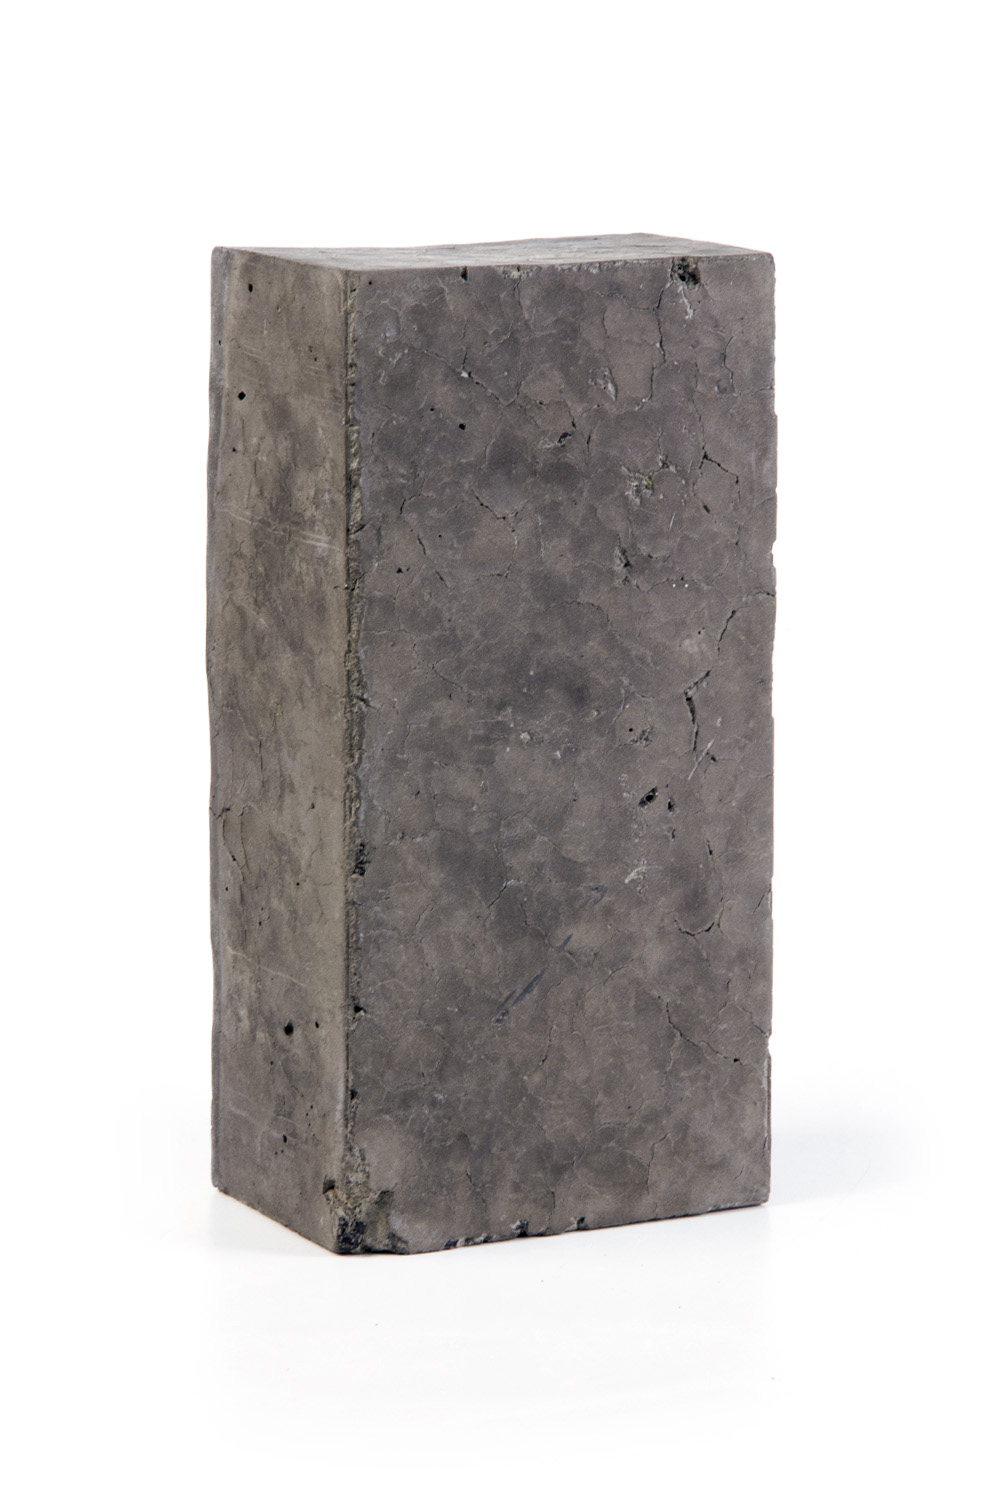 production geopolymer materials by coal fly The geopolymer binder materials were prepared using hfo,  the geopolymer production method involves mechanical  differs from that of coal fly ash the sem .